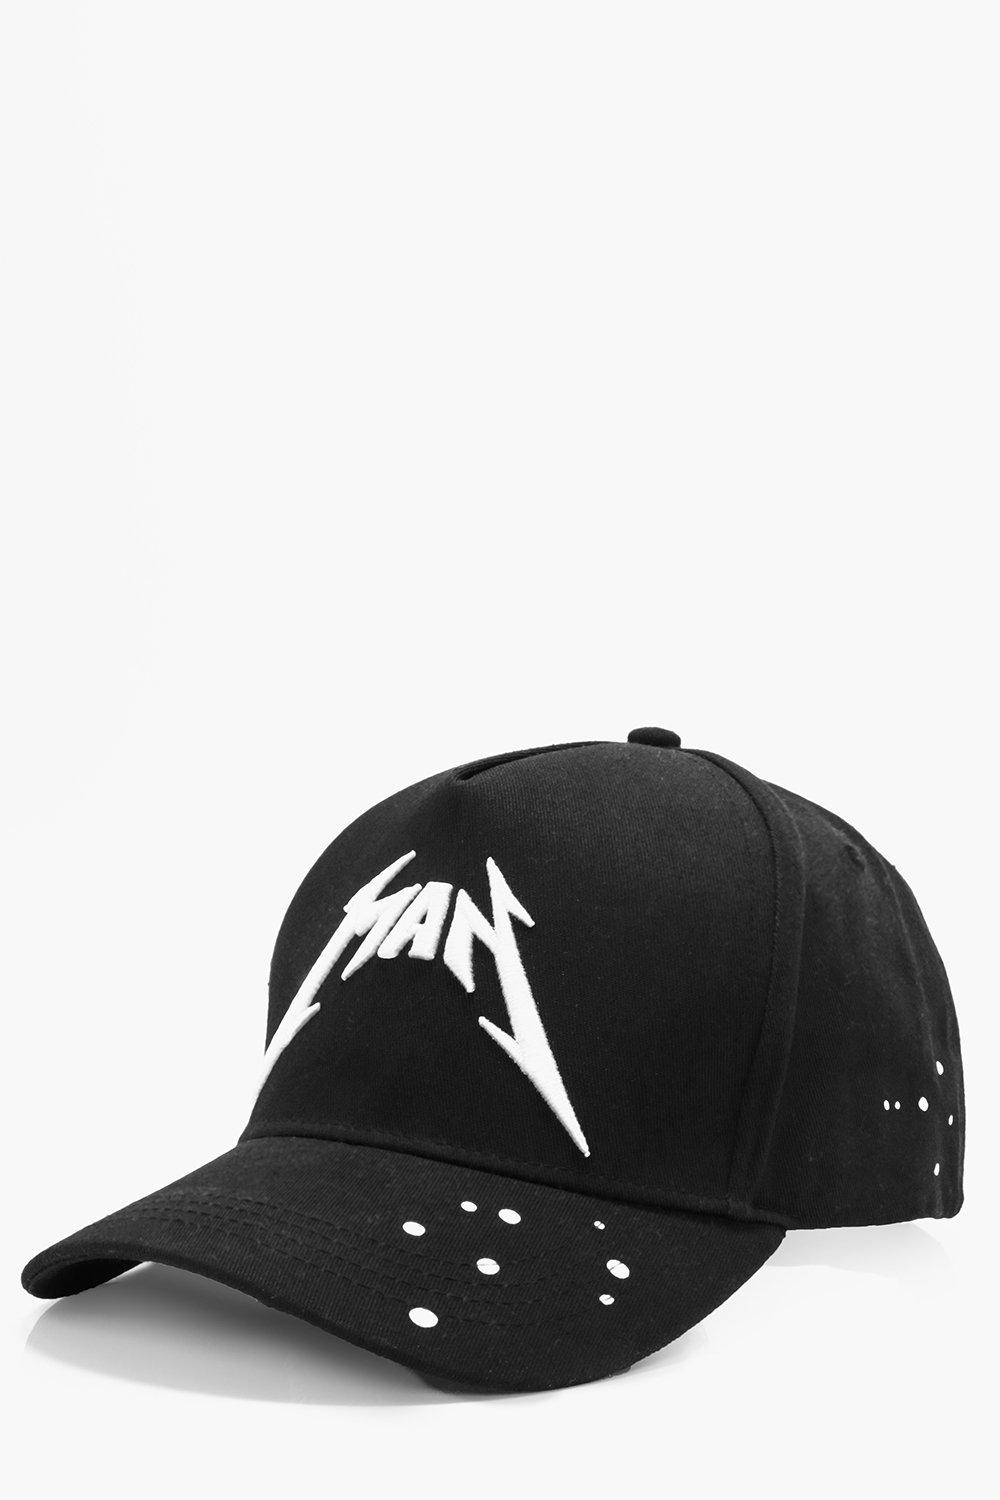 Man Band Peak Cap - black - Black Man Band Peak Ca